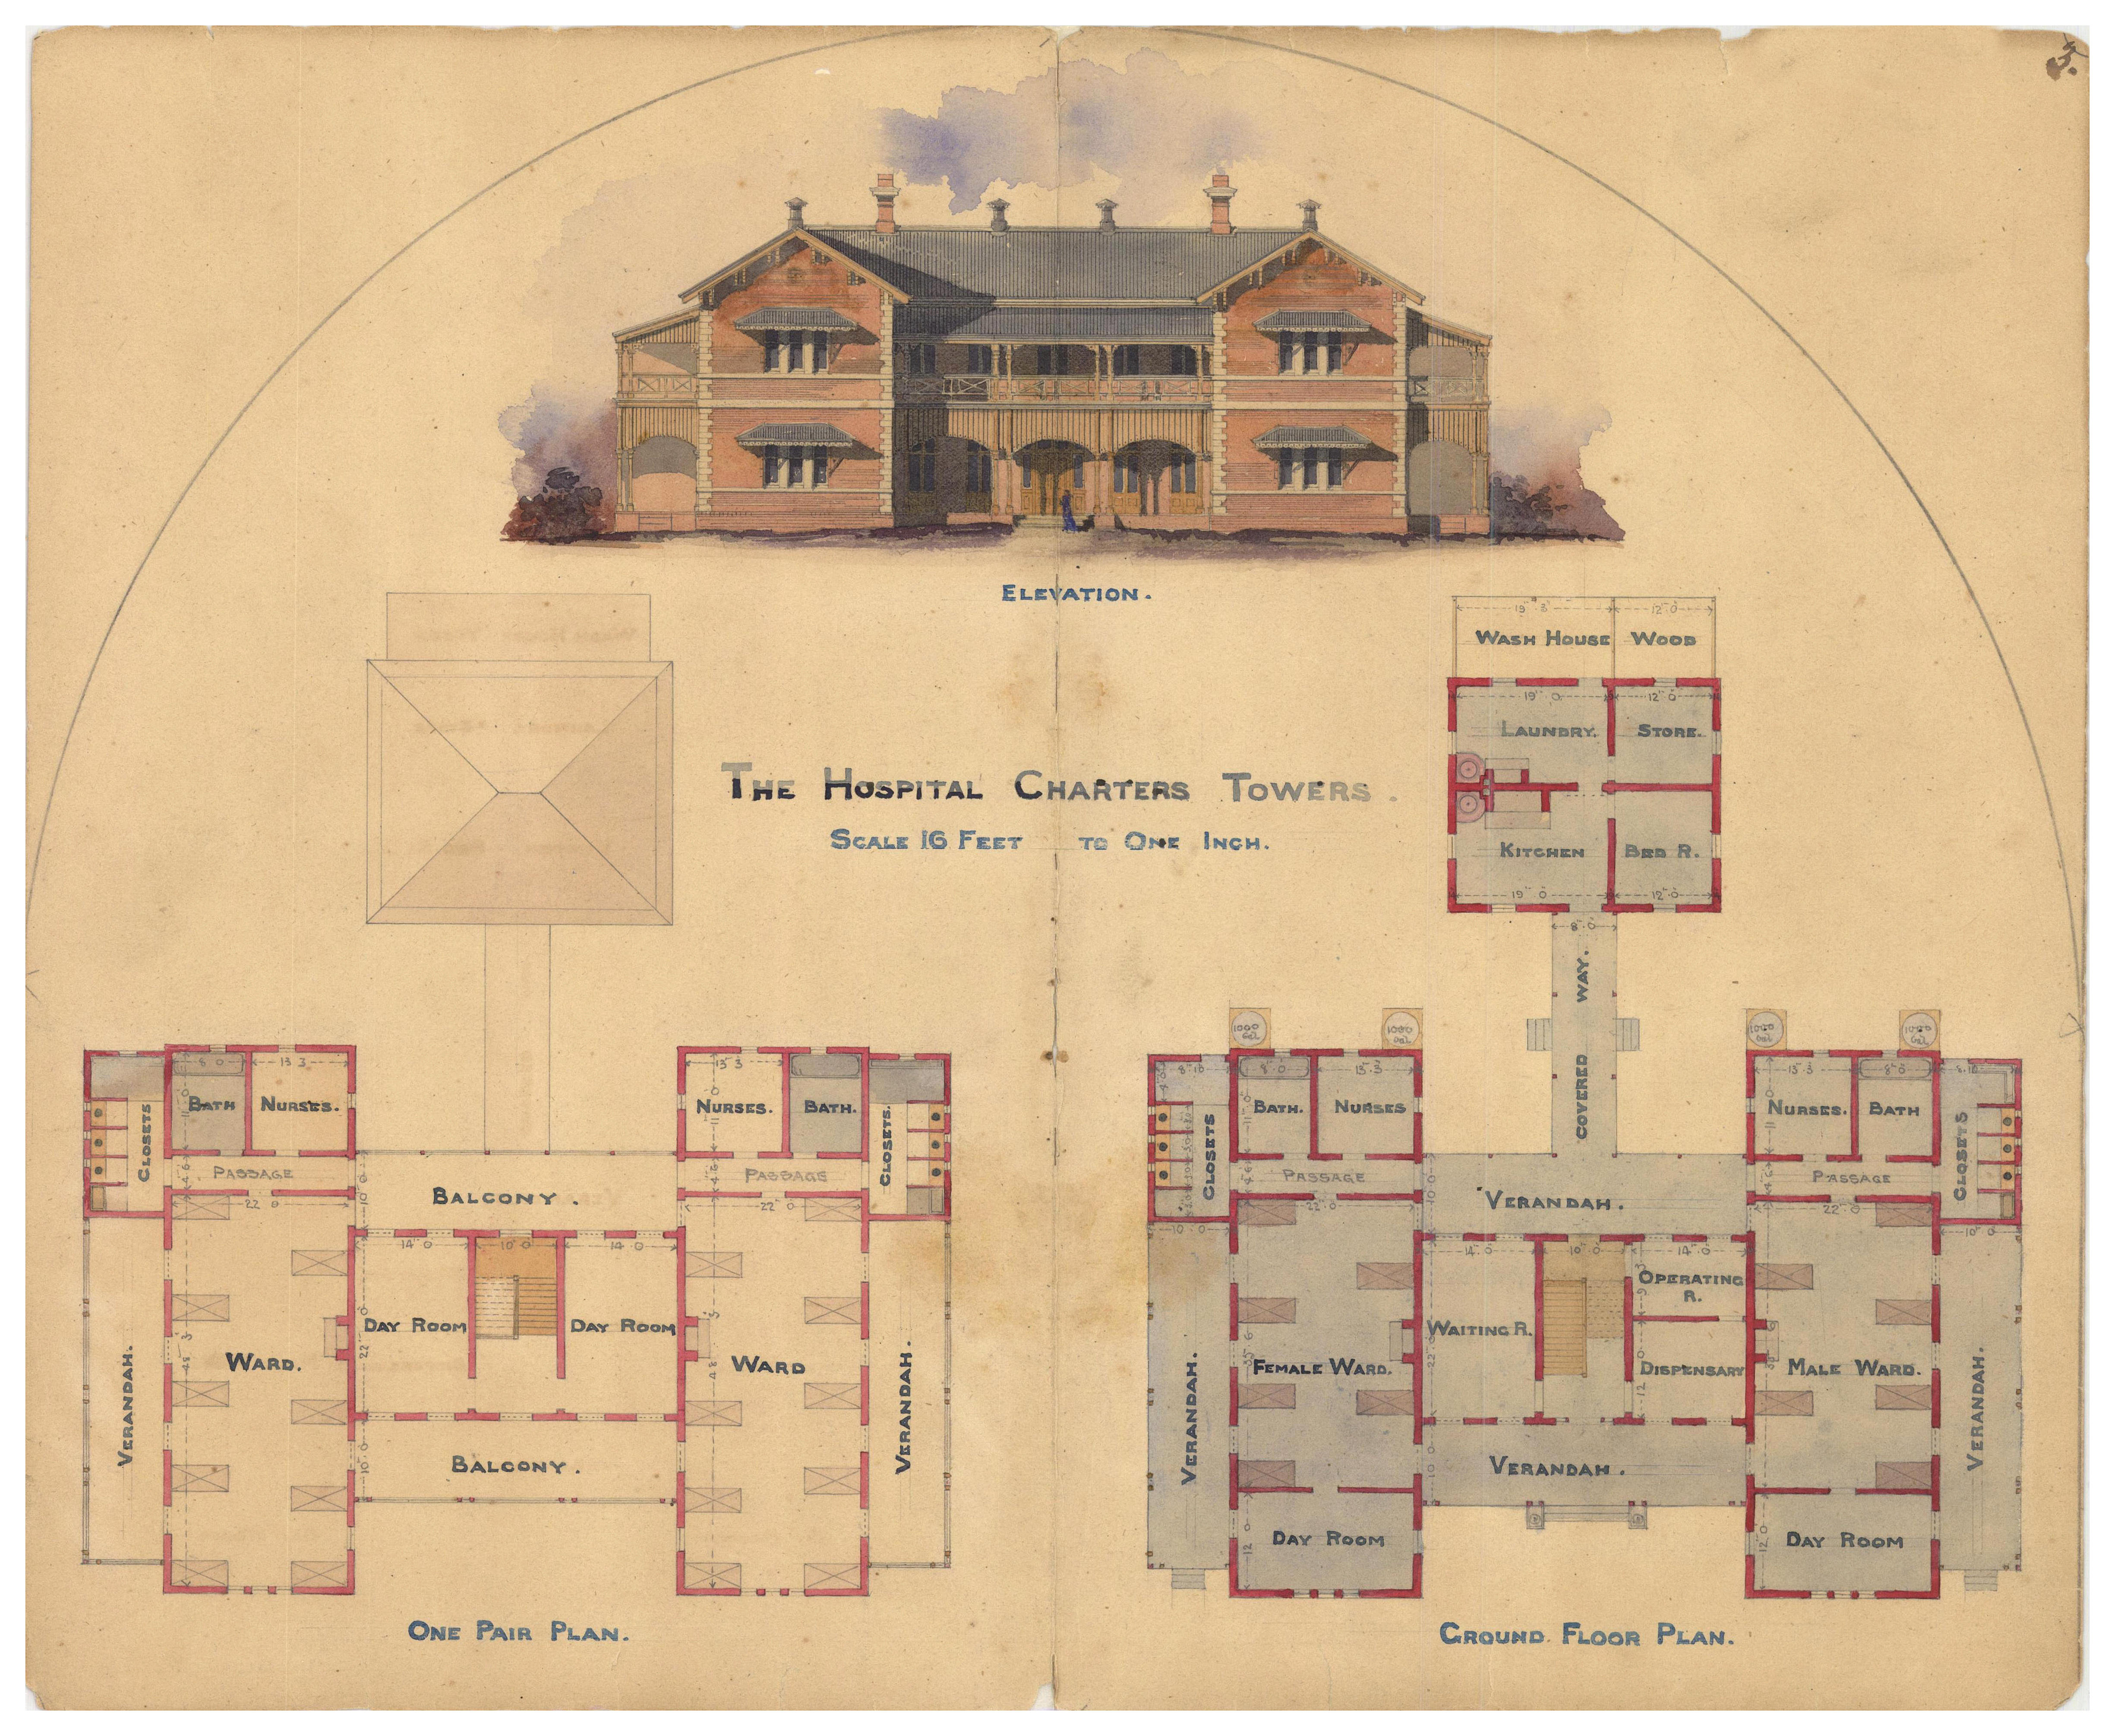 4900x4022 Filearchitectural Drawing Of The Hospital, Charters Towers, 1887